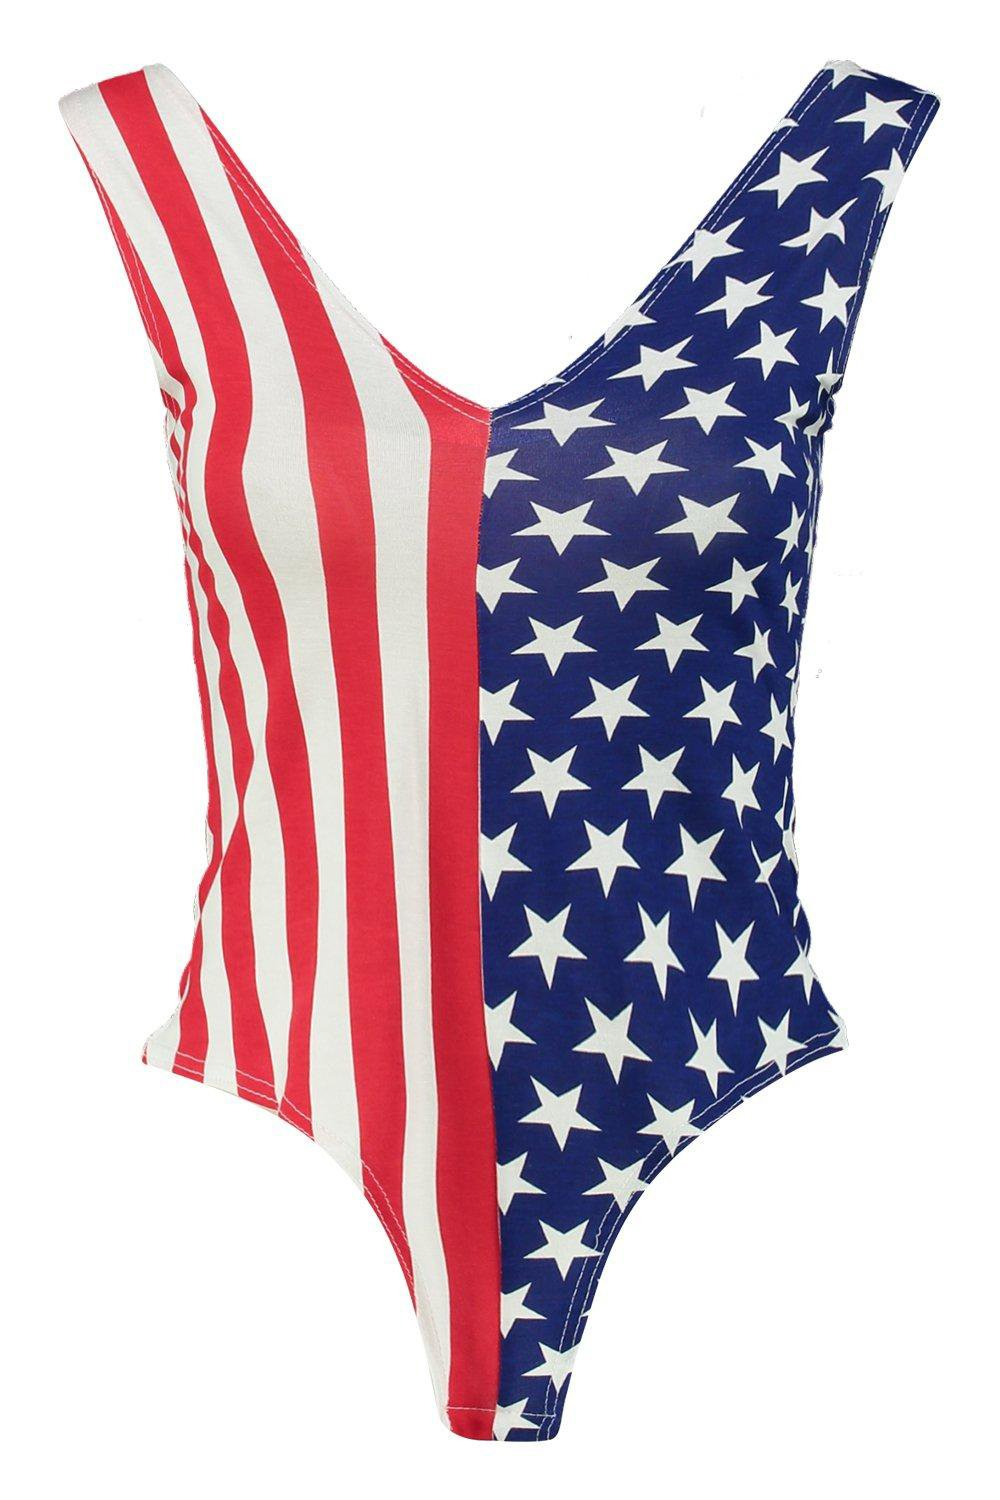 The Stars and Stripes Beach Monokini Swimsuit